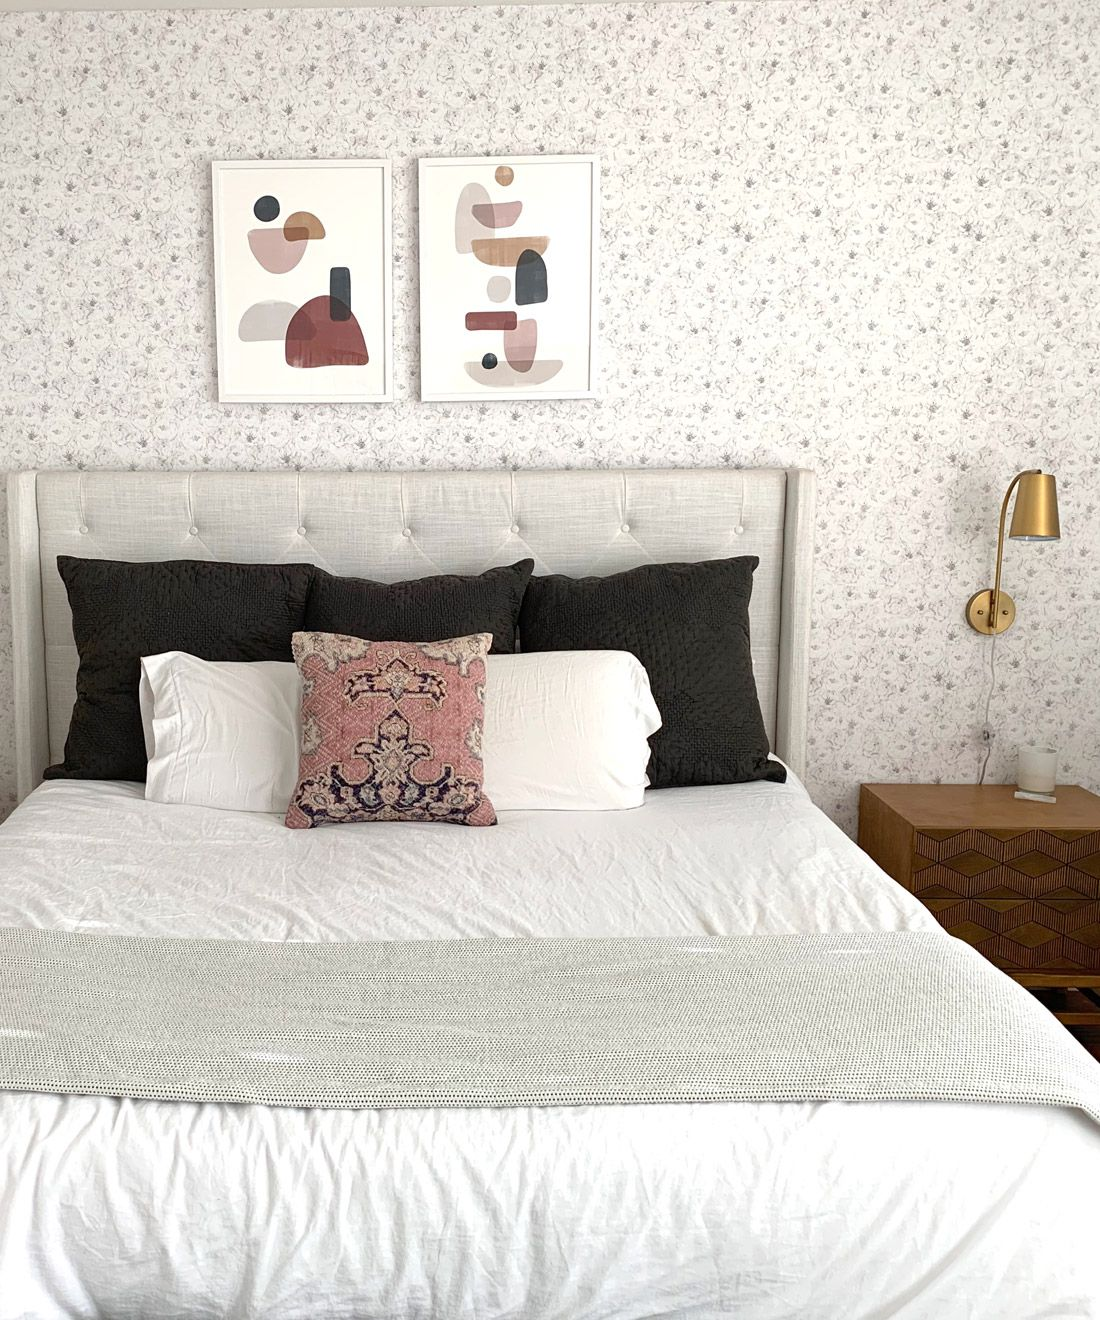 Peonies & Anemones White Floral Bedroom wallpaper